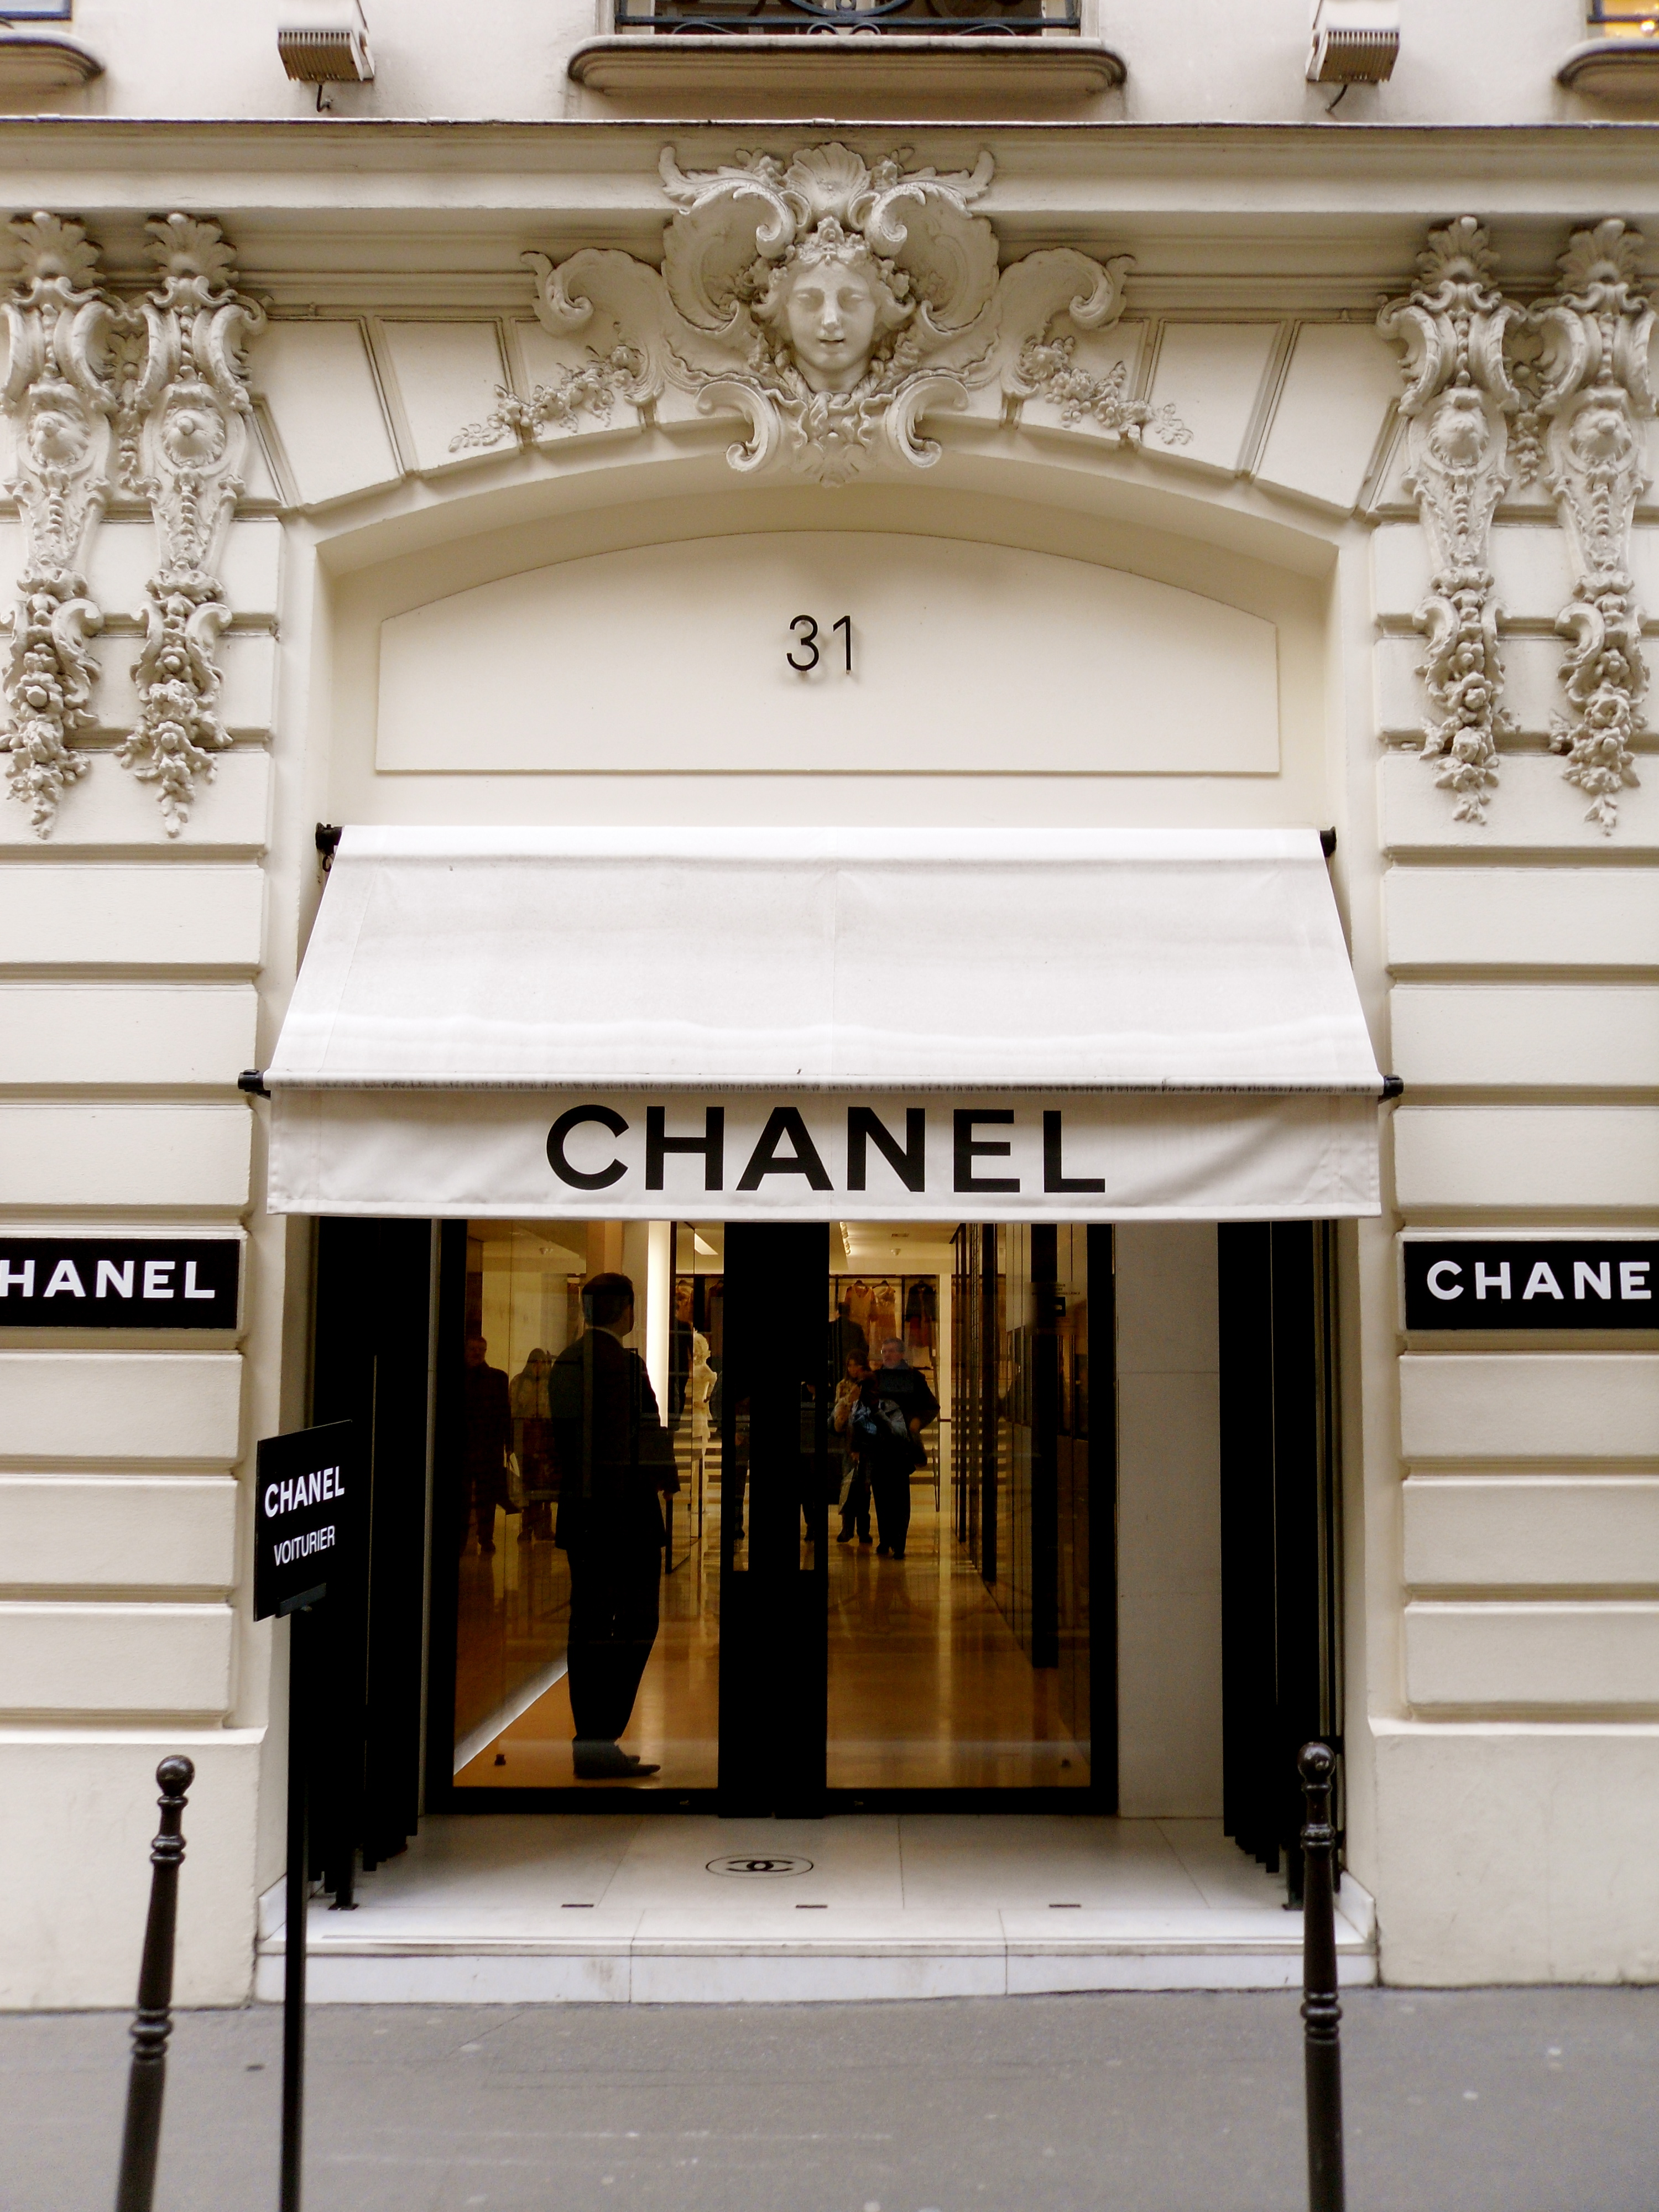 31 rue cambon the world of coco chanel work in progress for Couture house